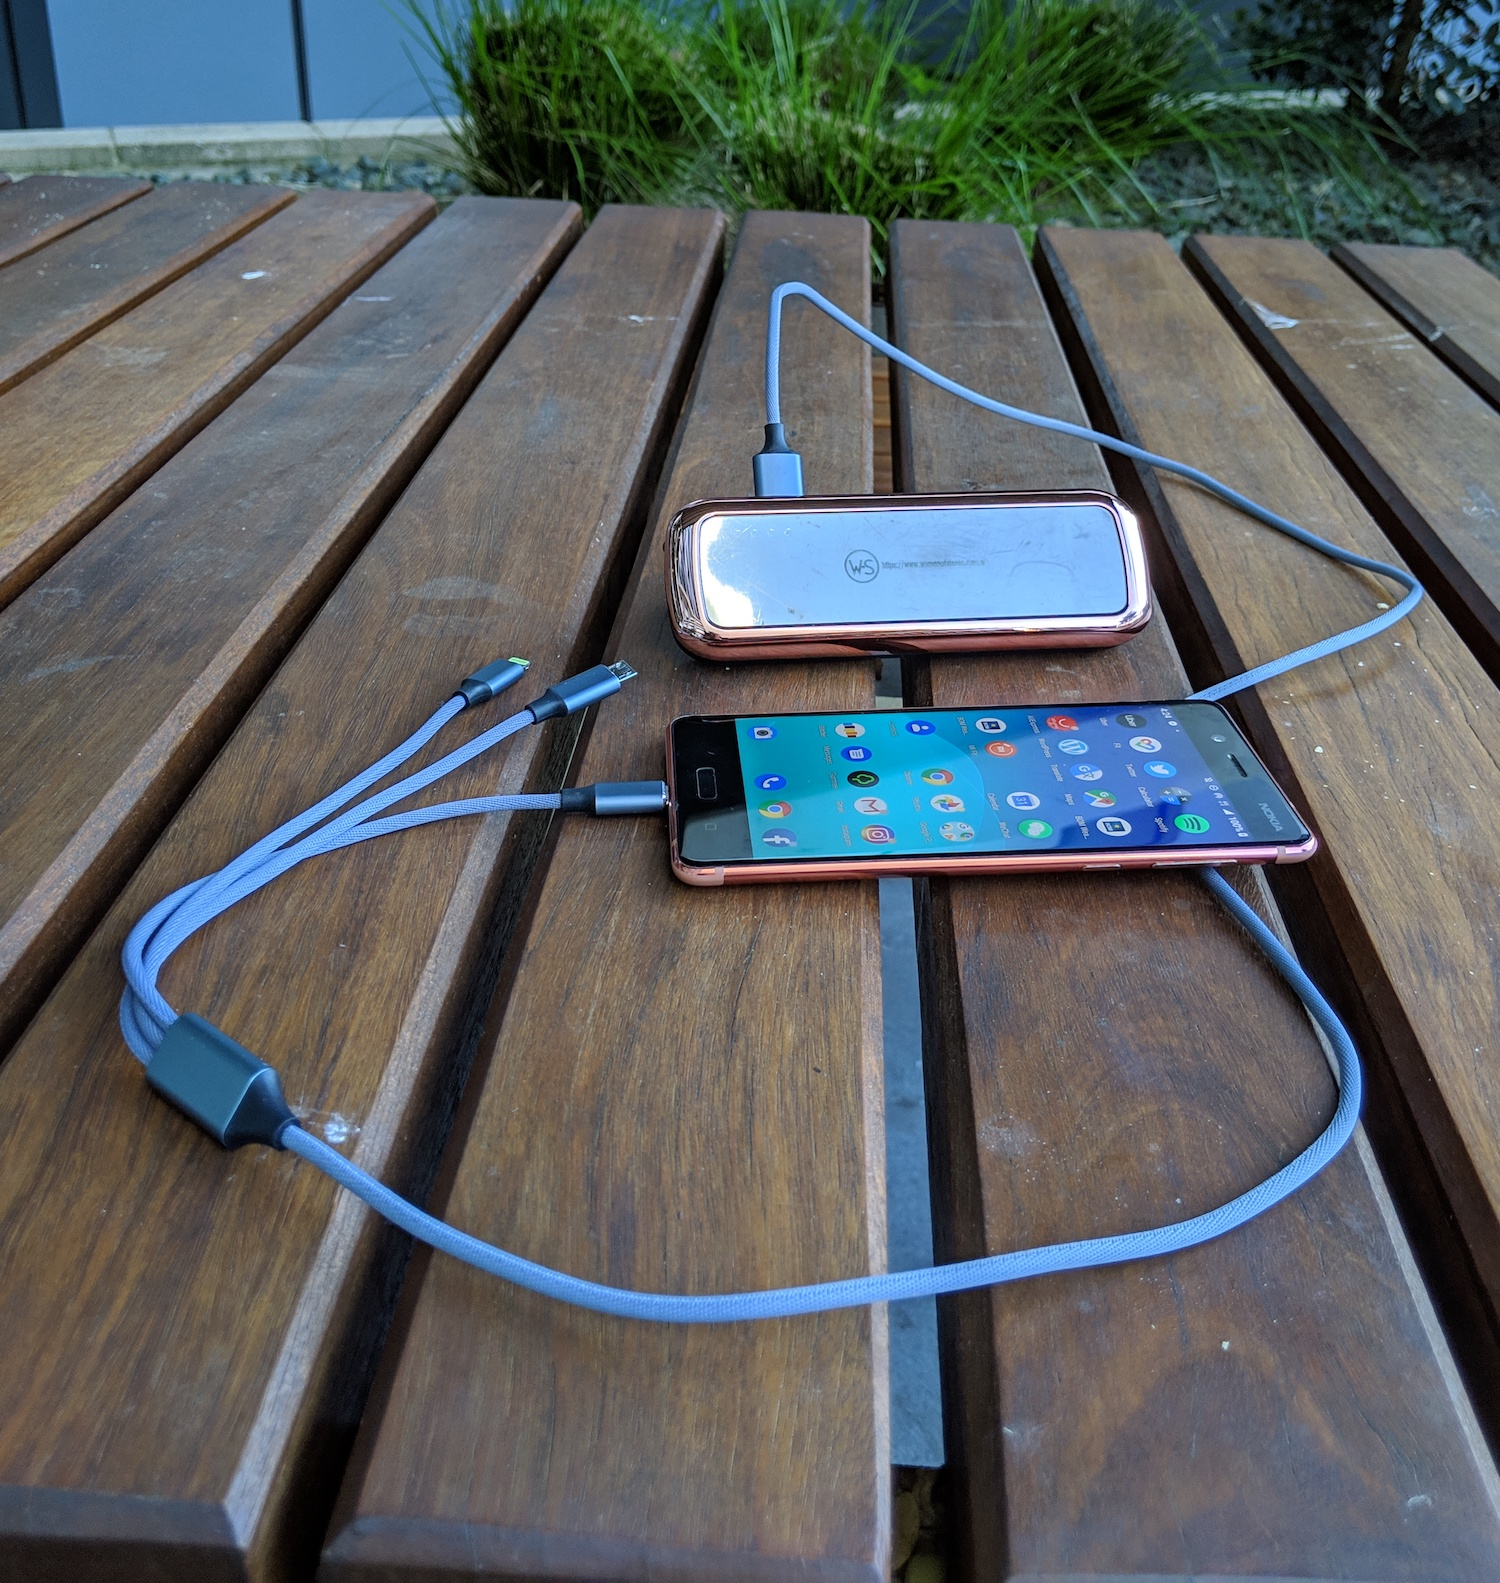 A multiCharger and Powerbank in action